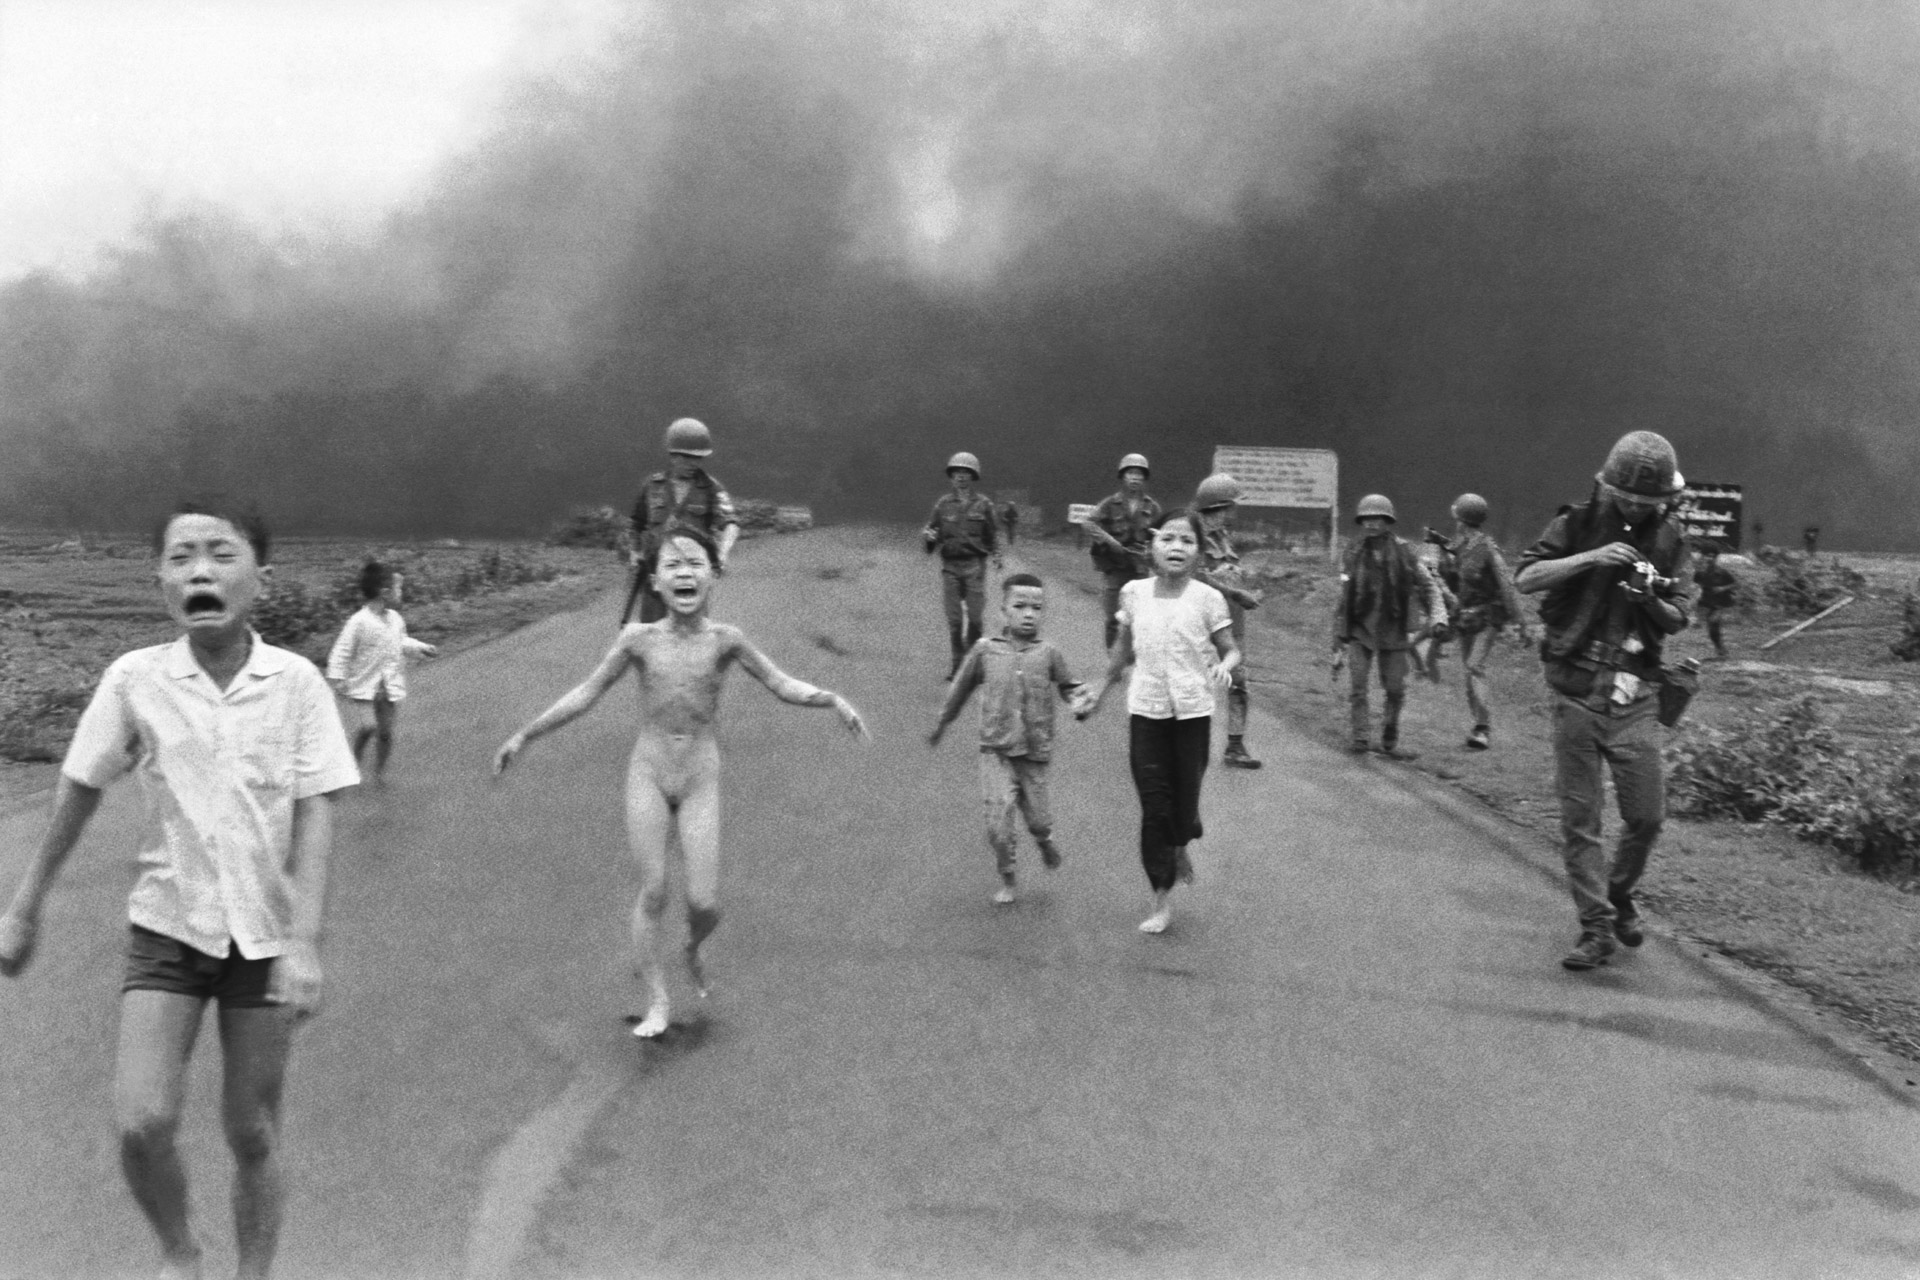 Reference Image: Phan Thị Kim Phúc taken by photographer Huỳnh Công Út a.k.a Nik Ut. Romeo Alaeff, 'Smells Like Napalm,' 2007. 60 x 40 in. (152,4 x 101,6 cm.) Limited Edition Serigraph Print. Edition 10. From the series, 'War on the Brain.' This work employs famous journalistic photos as well as a movie still from 'Apocalypse Now' to invoke impressions of Vietnam as seen through the media, which was responsible in part for changing public opinion about the war.